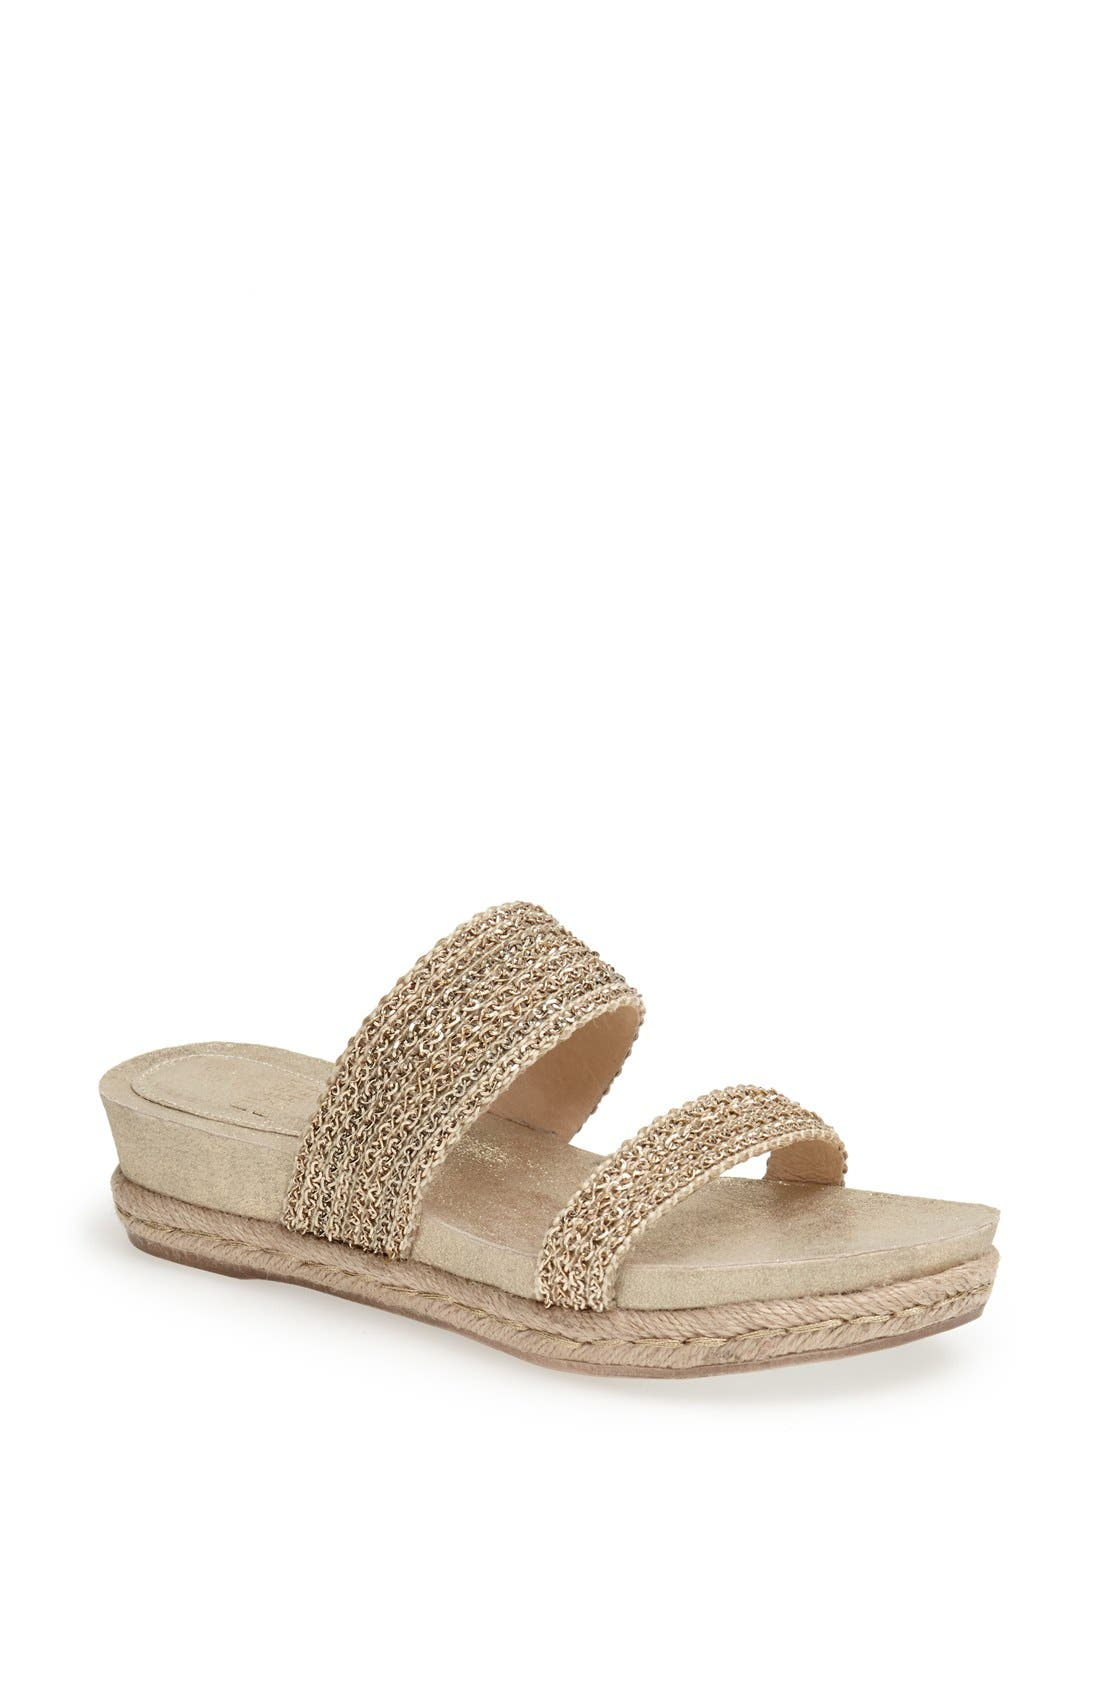 Alternate Image 1 Selected - Eileen Fisher 'Fresh' Sandal